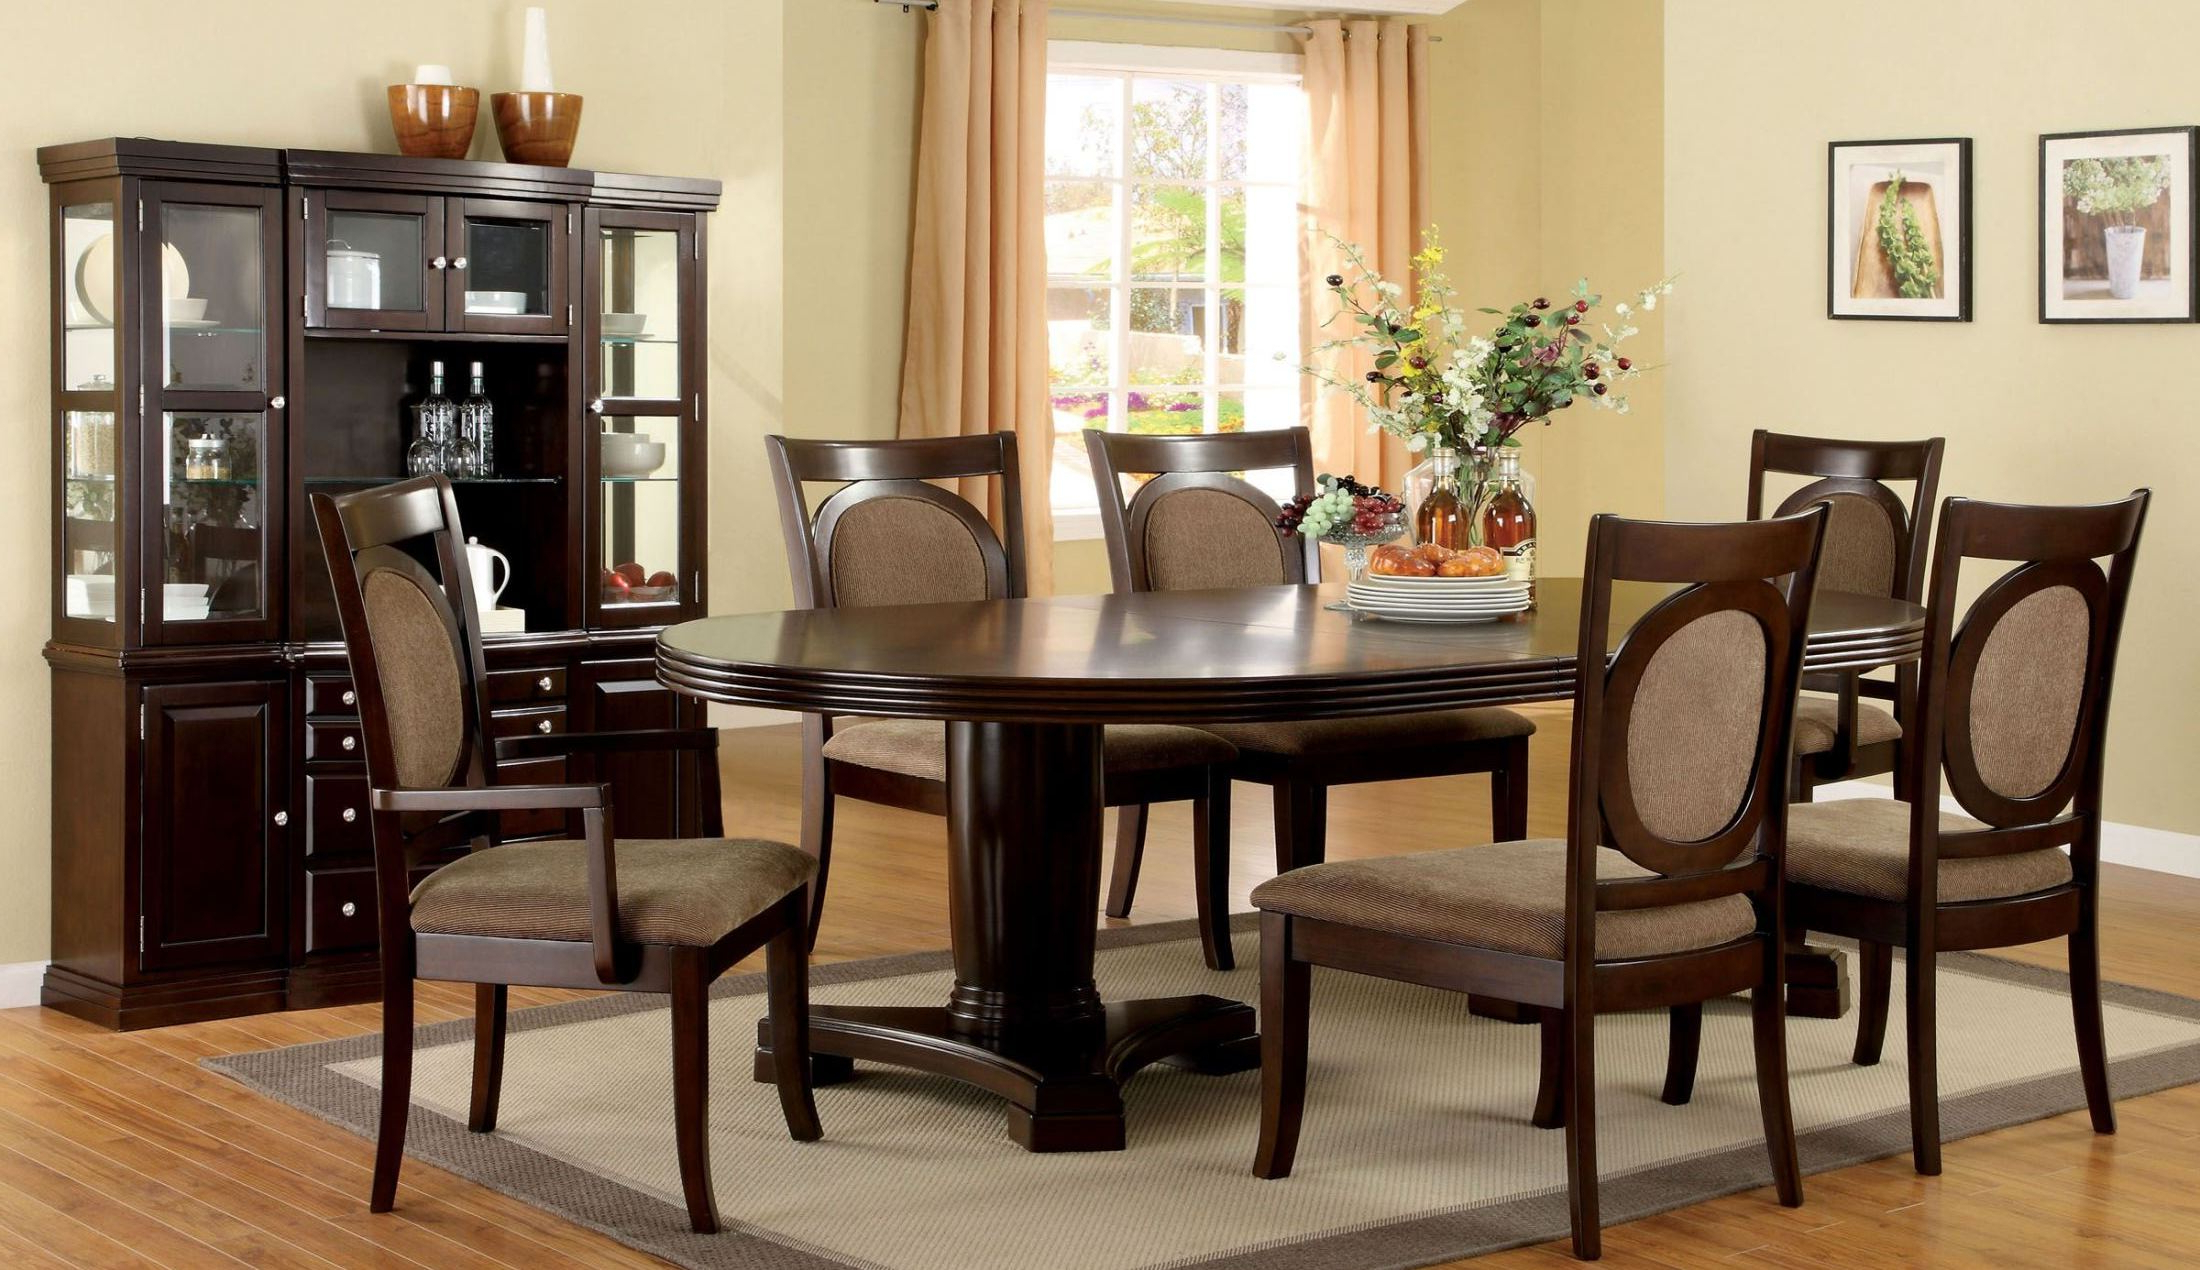 Most Recently Released Evellen 5 Piece Solid Wood Dining Sets (Set Of 5) In Evelyn Walnut Oval Extendable Pedestal Dining Room Set (View 13 of 20)